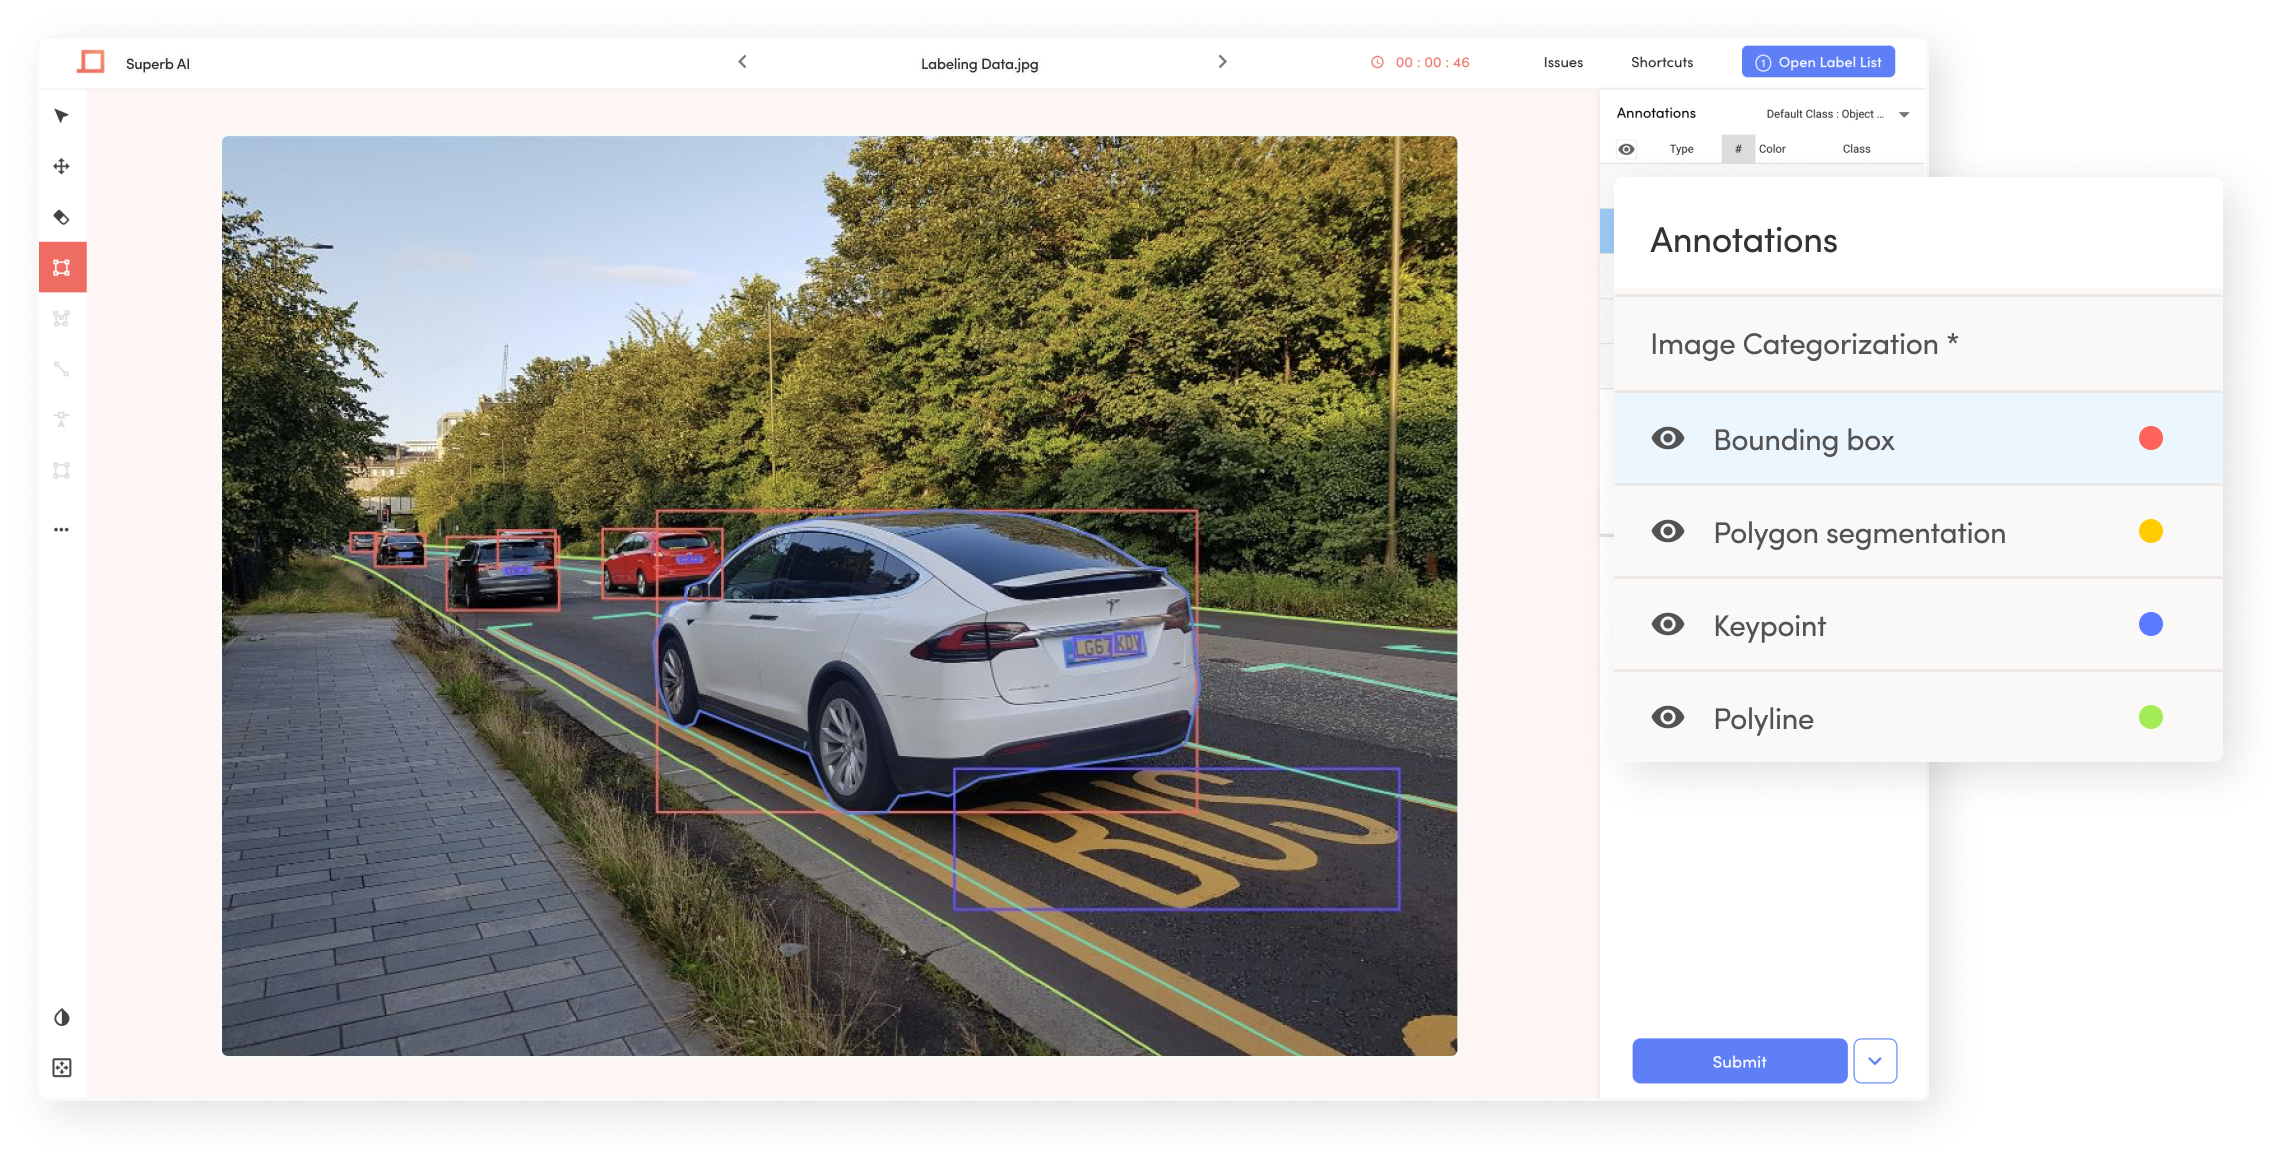 Labeling self-driving image with powerful labeling tool